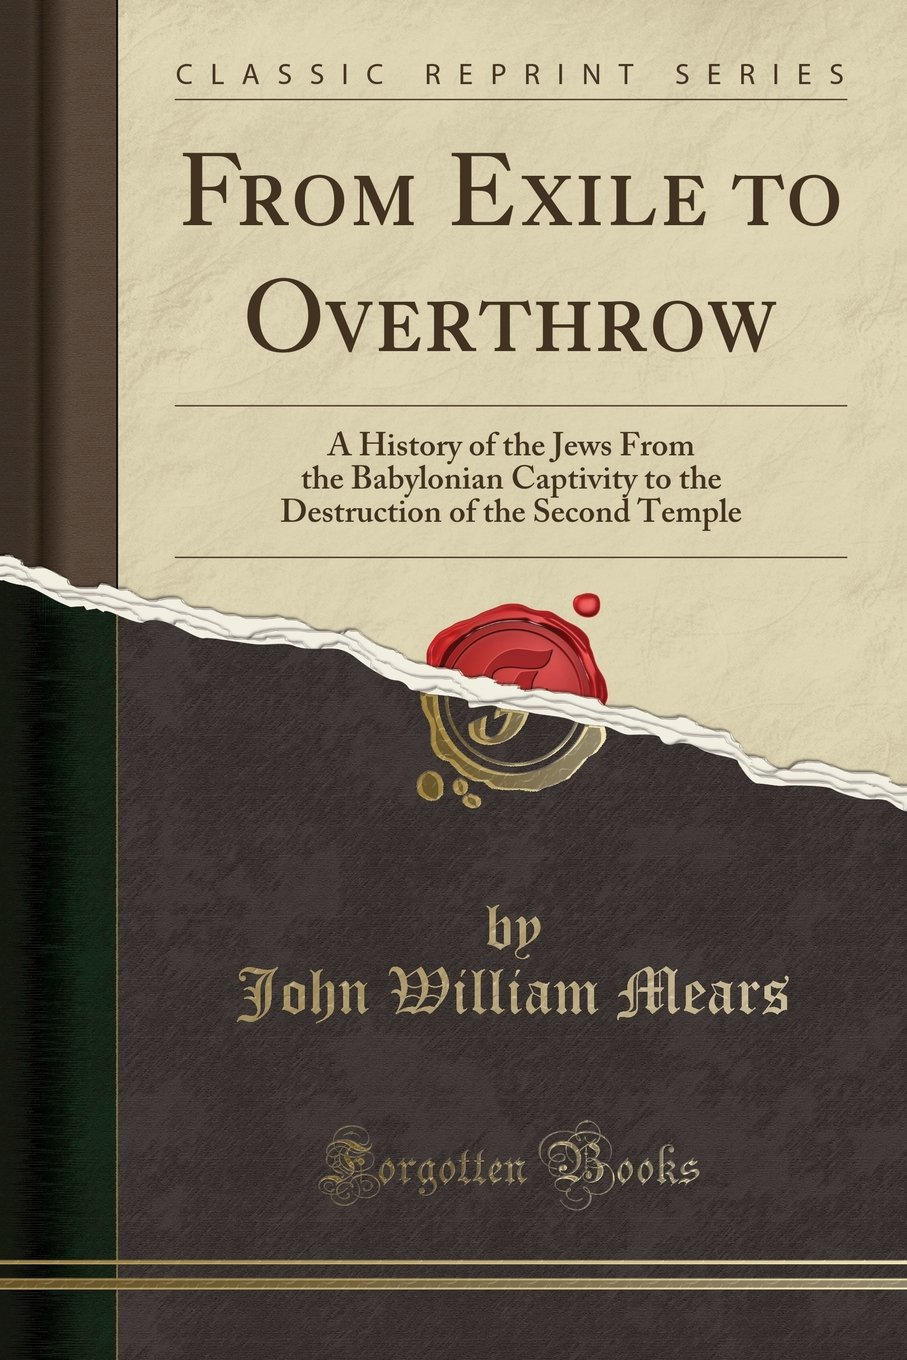 From Exile to Overthrow: A History of the Jews From the Babylonian Captivity to the Destruction of the Second Temple (Classic Reprint)